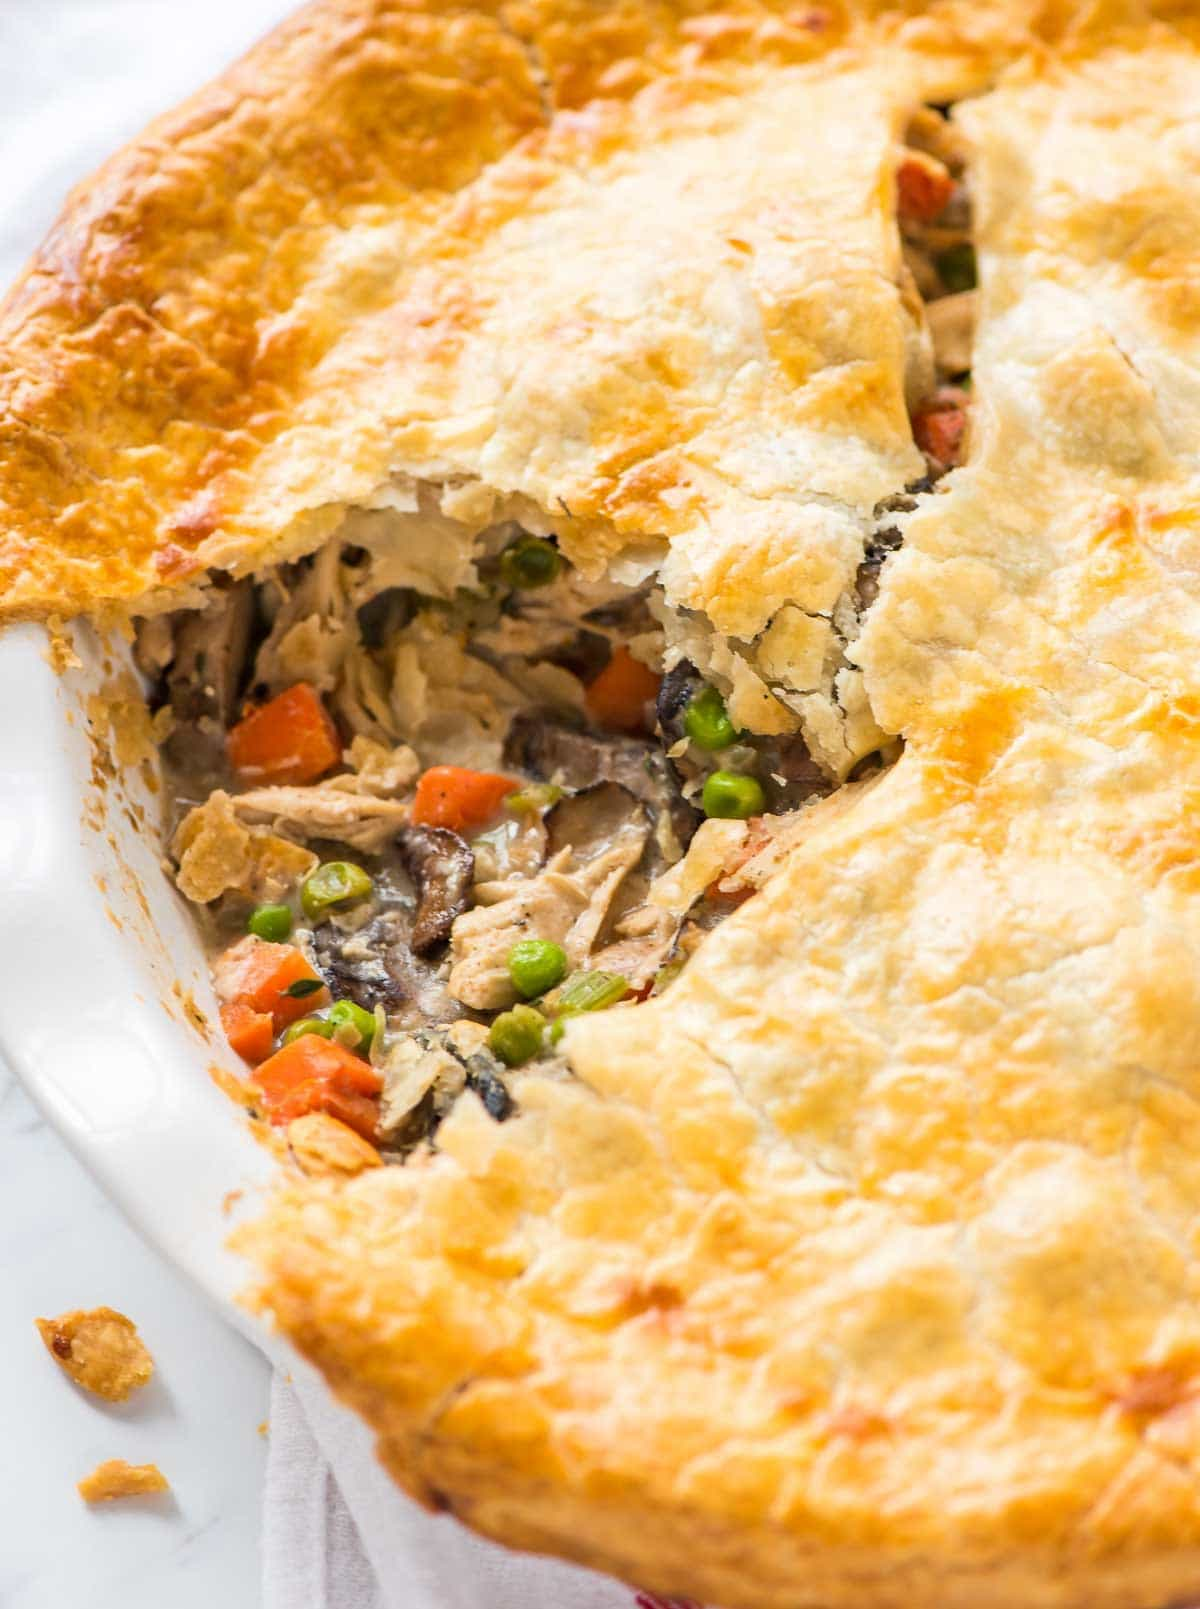 Creamy and rich healthy chicken pot pie with mushrooms